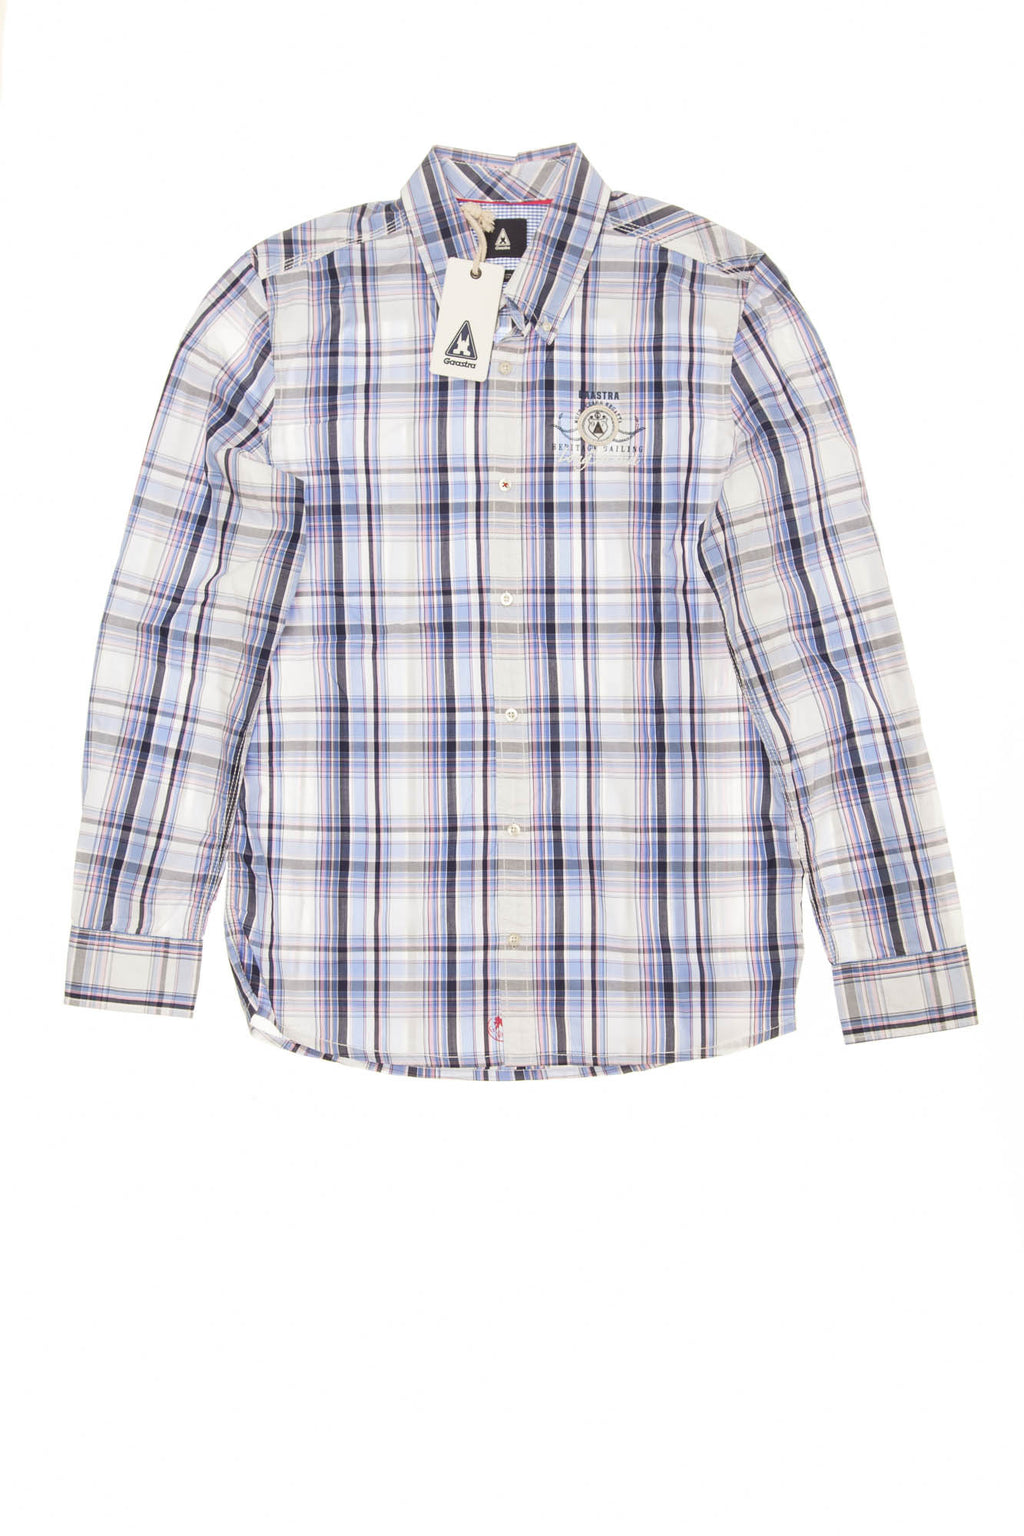 Gaastra - Blue Plaid Button Up Long Sleeve Dress Shirt -